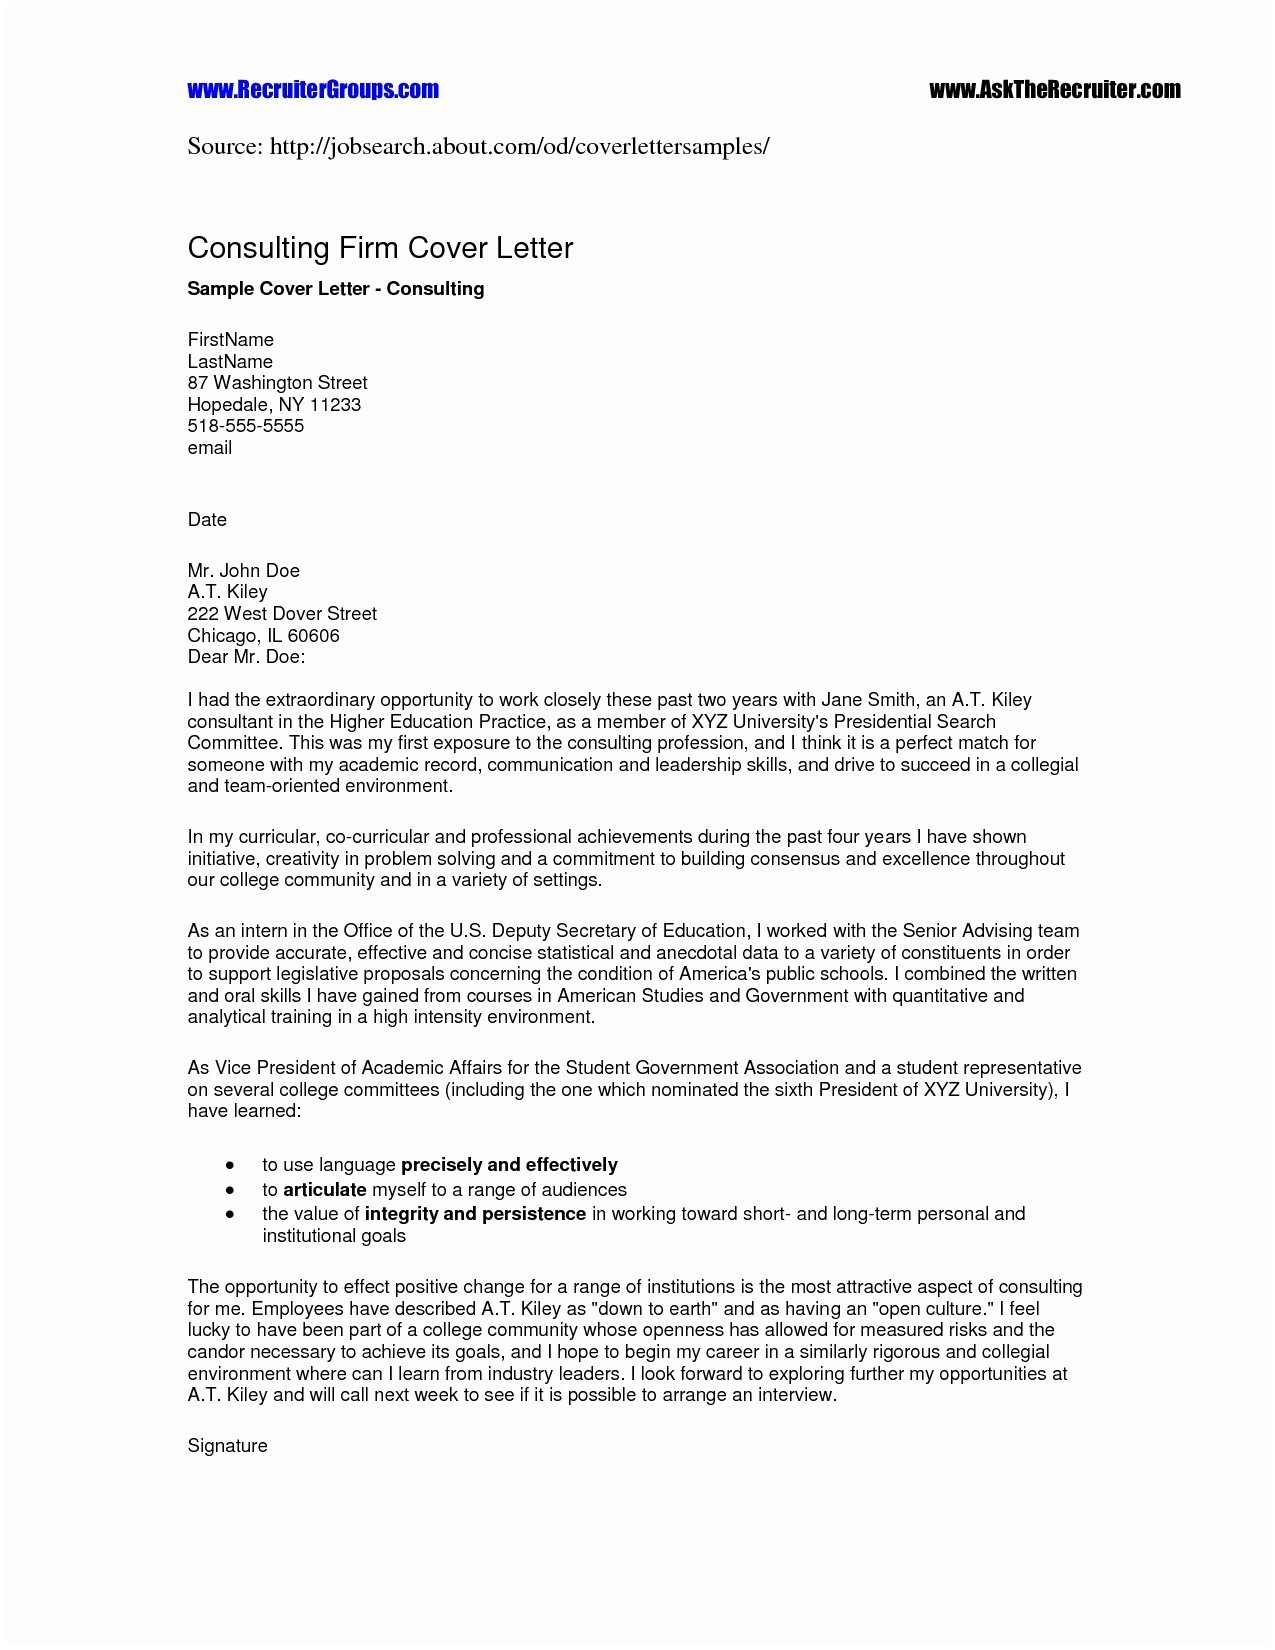 Tenant guarantor letter template examples letter templates tenant guarantor letter template guarantor letter for job best letter interest for job email valid altavistaventures Image collections